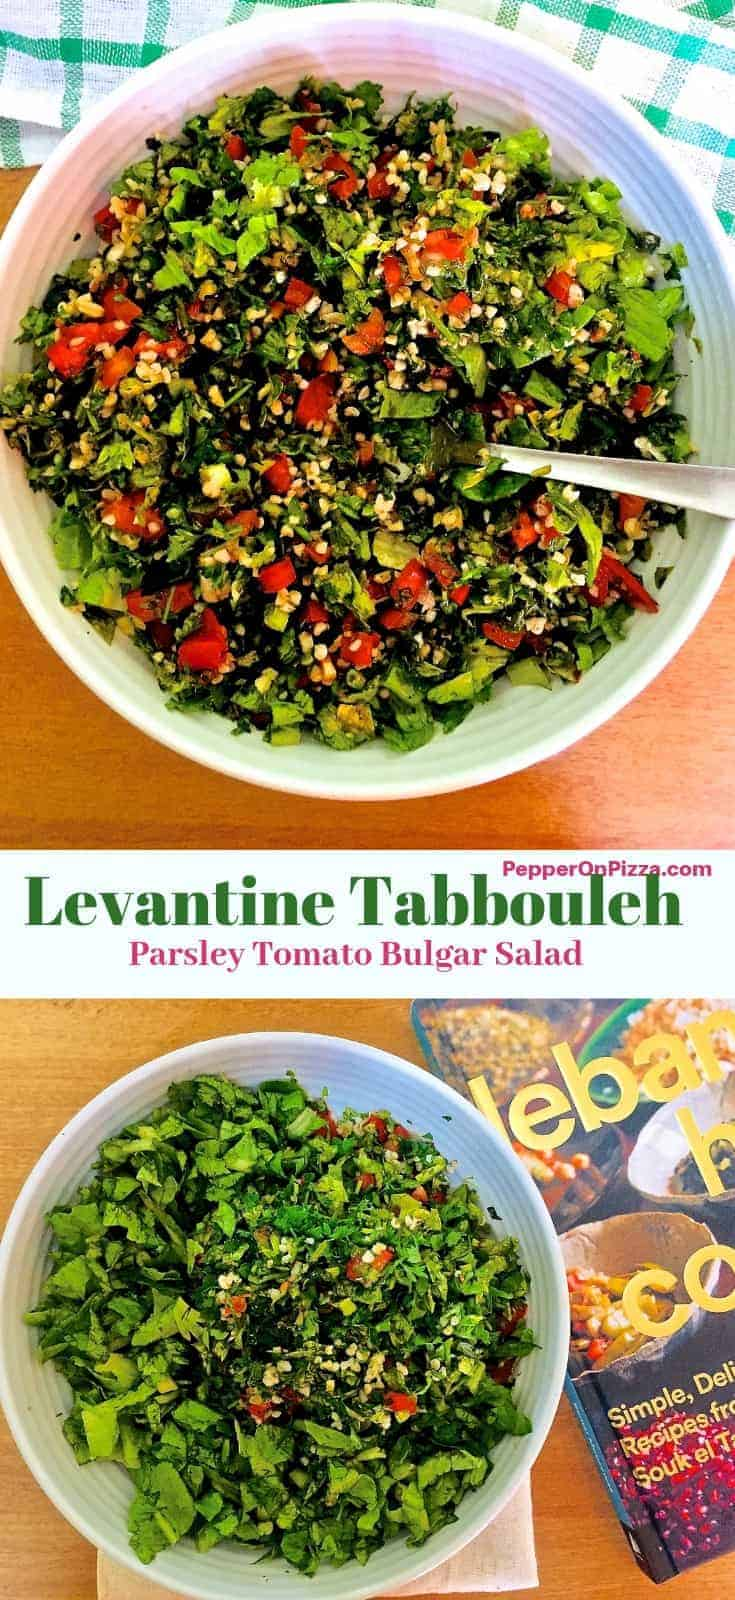 Two images of colourful Tabbouleh a white bowl, separated by a caption stating Levantine Tabbouleh -Parsley Tomato Bulgar Salad. Finely chopped green parsley, red tomatoes, green lettuce and creamy beige bulgar mixed into a refreshing salad